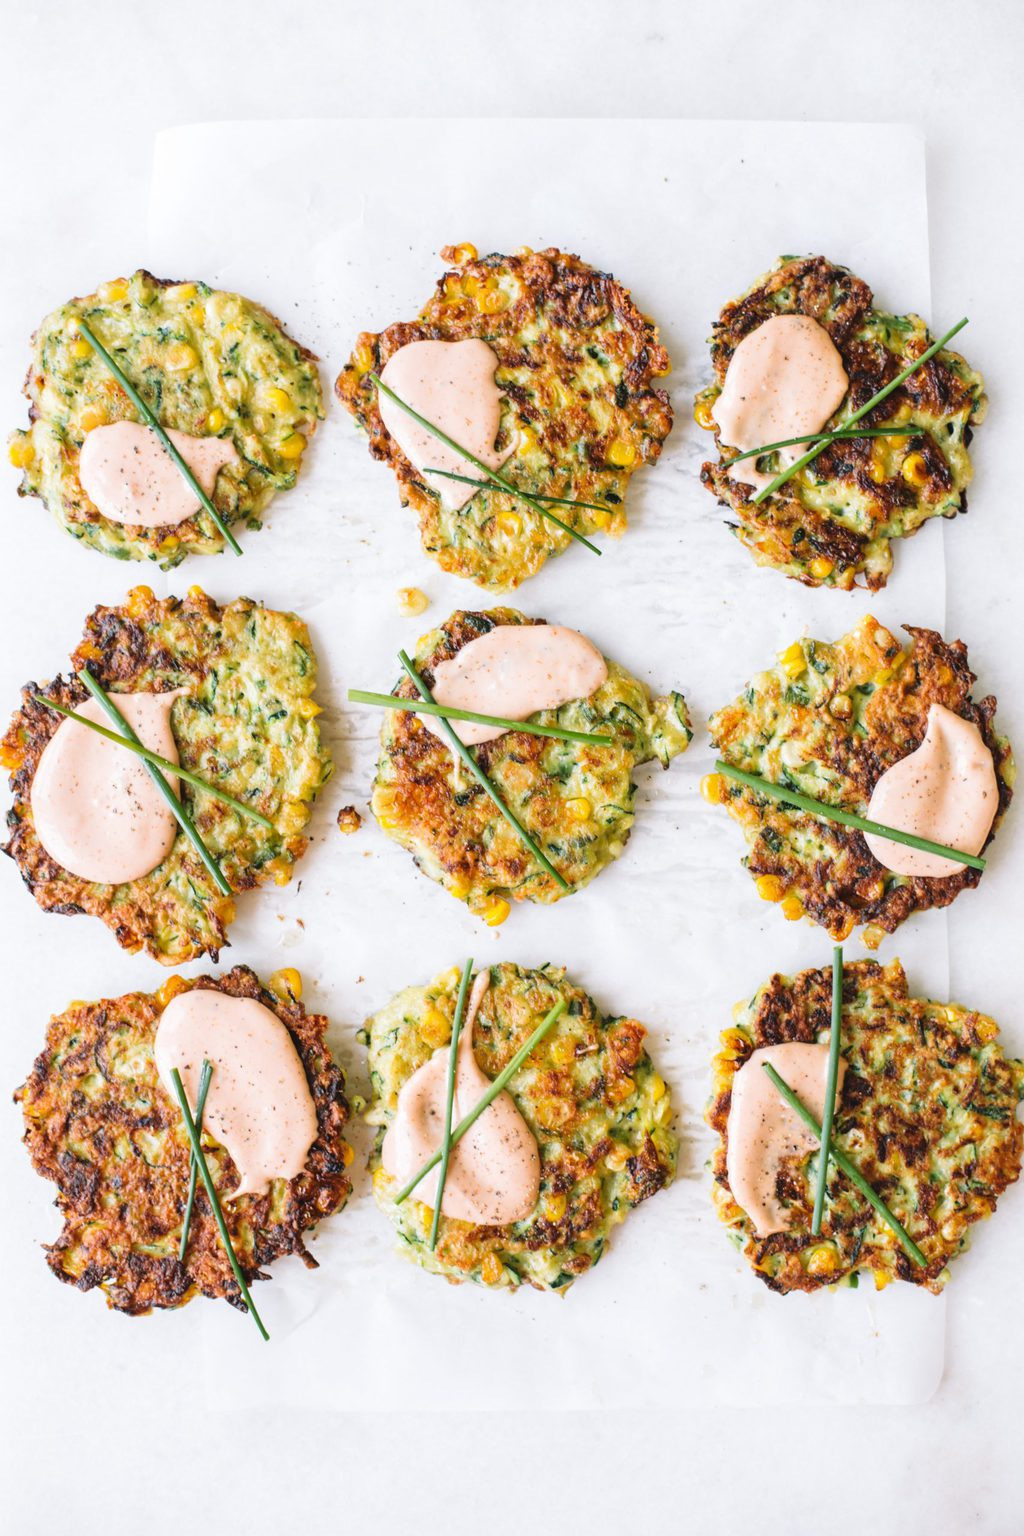 zucchini corn fritters on parchment paper topped with dipping sauce and chives